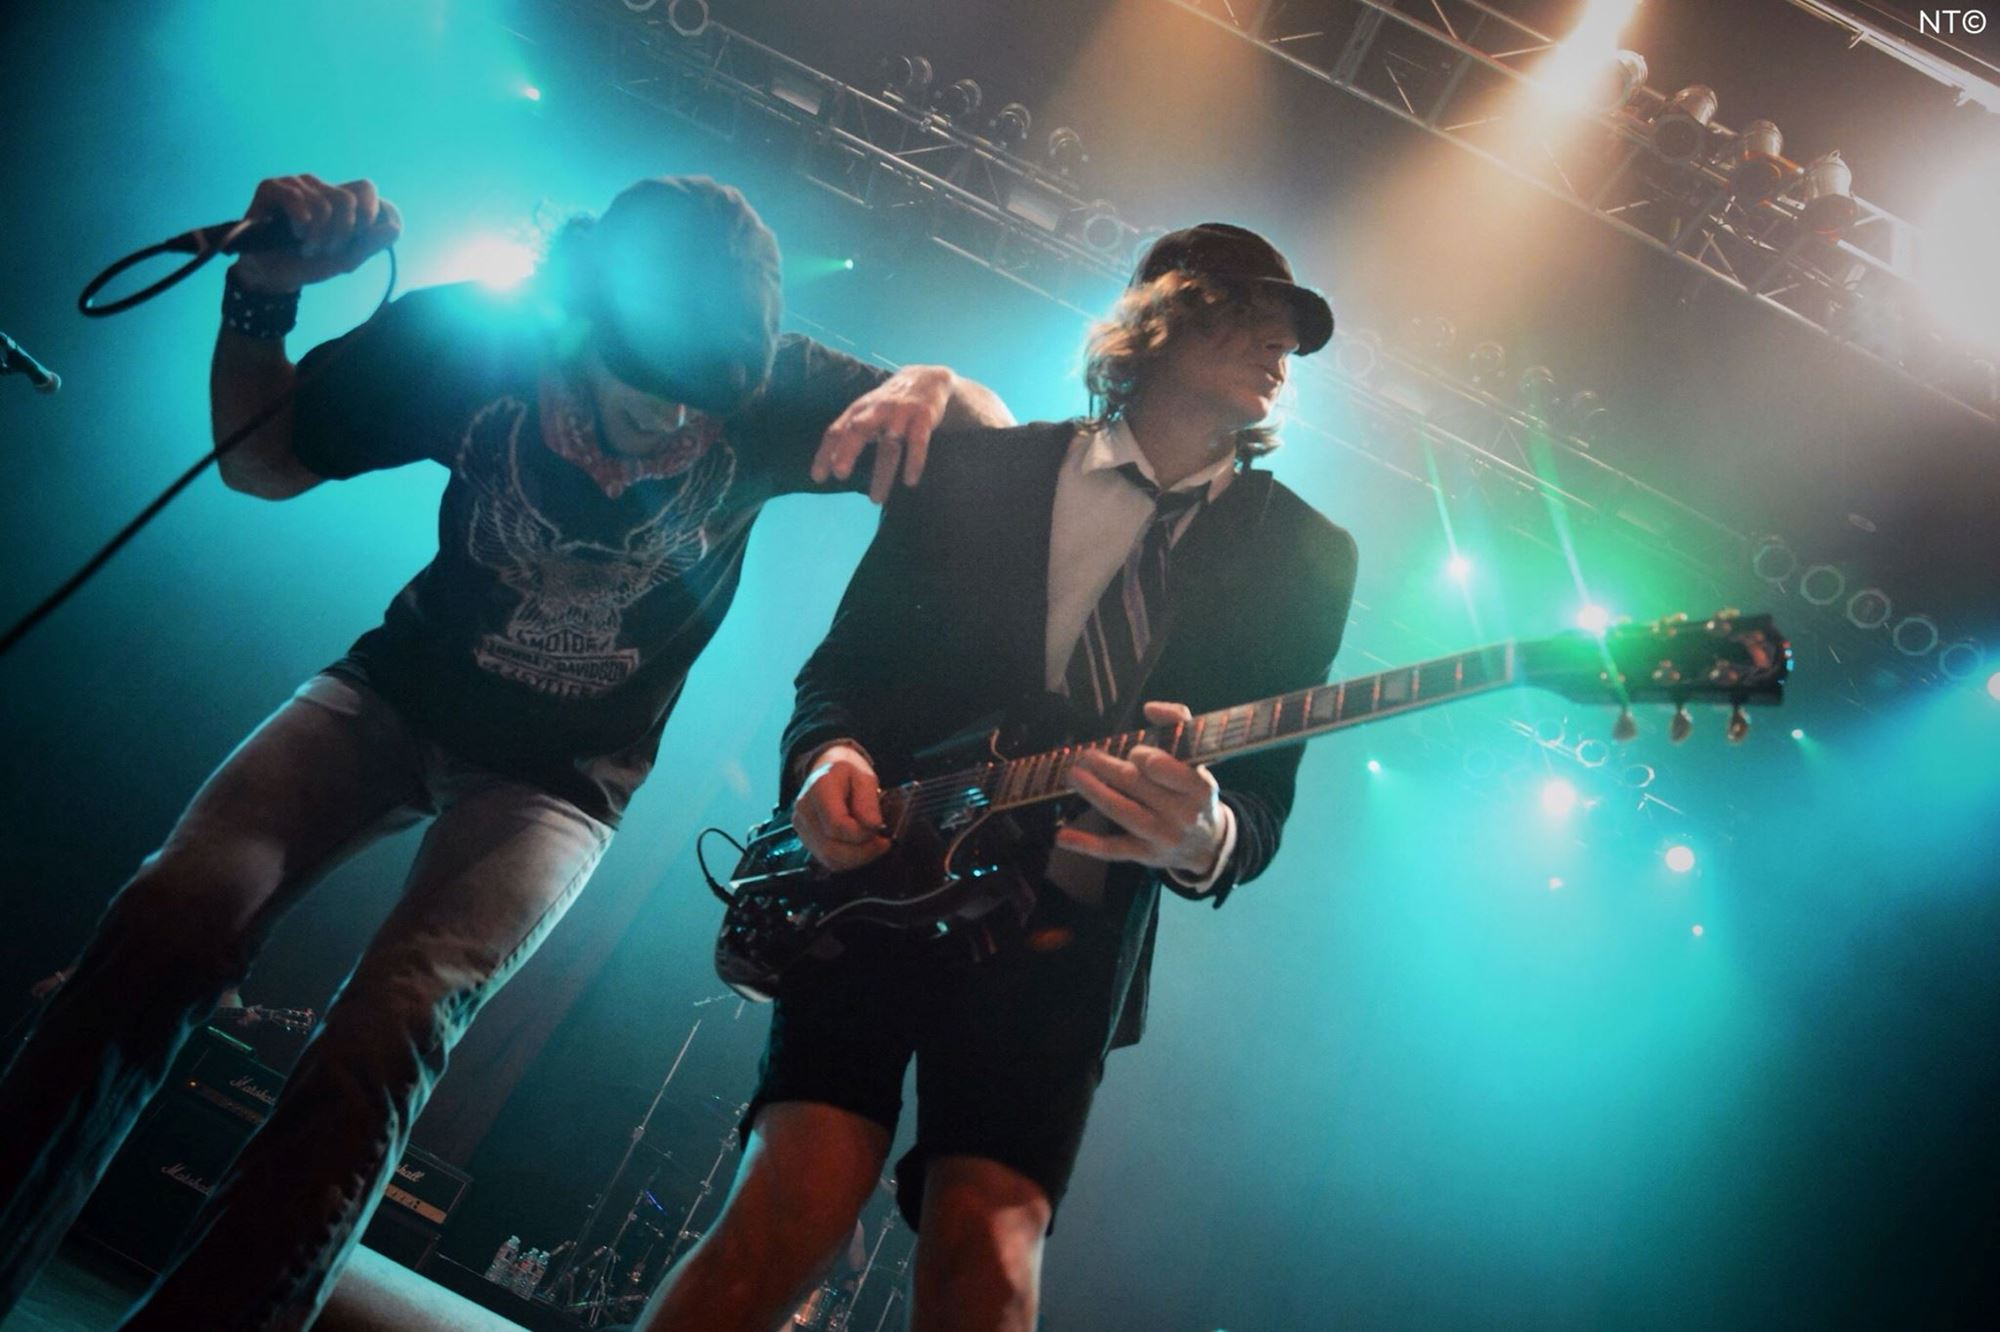 PRCA Rodeo w/<br> Back in Black AC/DC Tribute<br> Friday, Feb. 19 at 7 PM